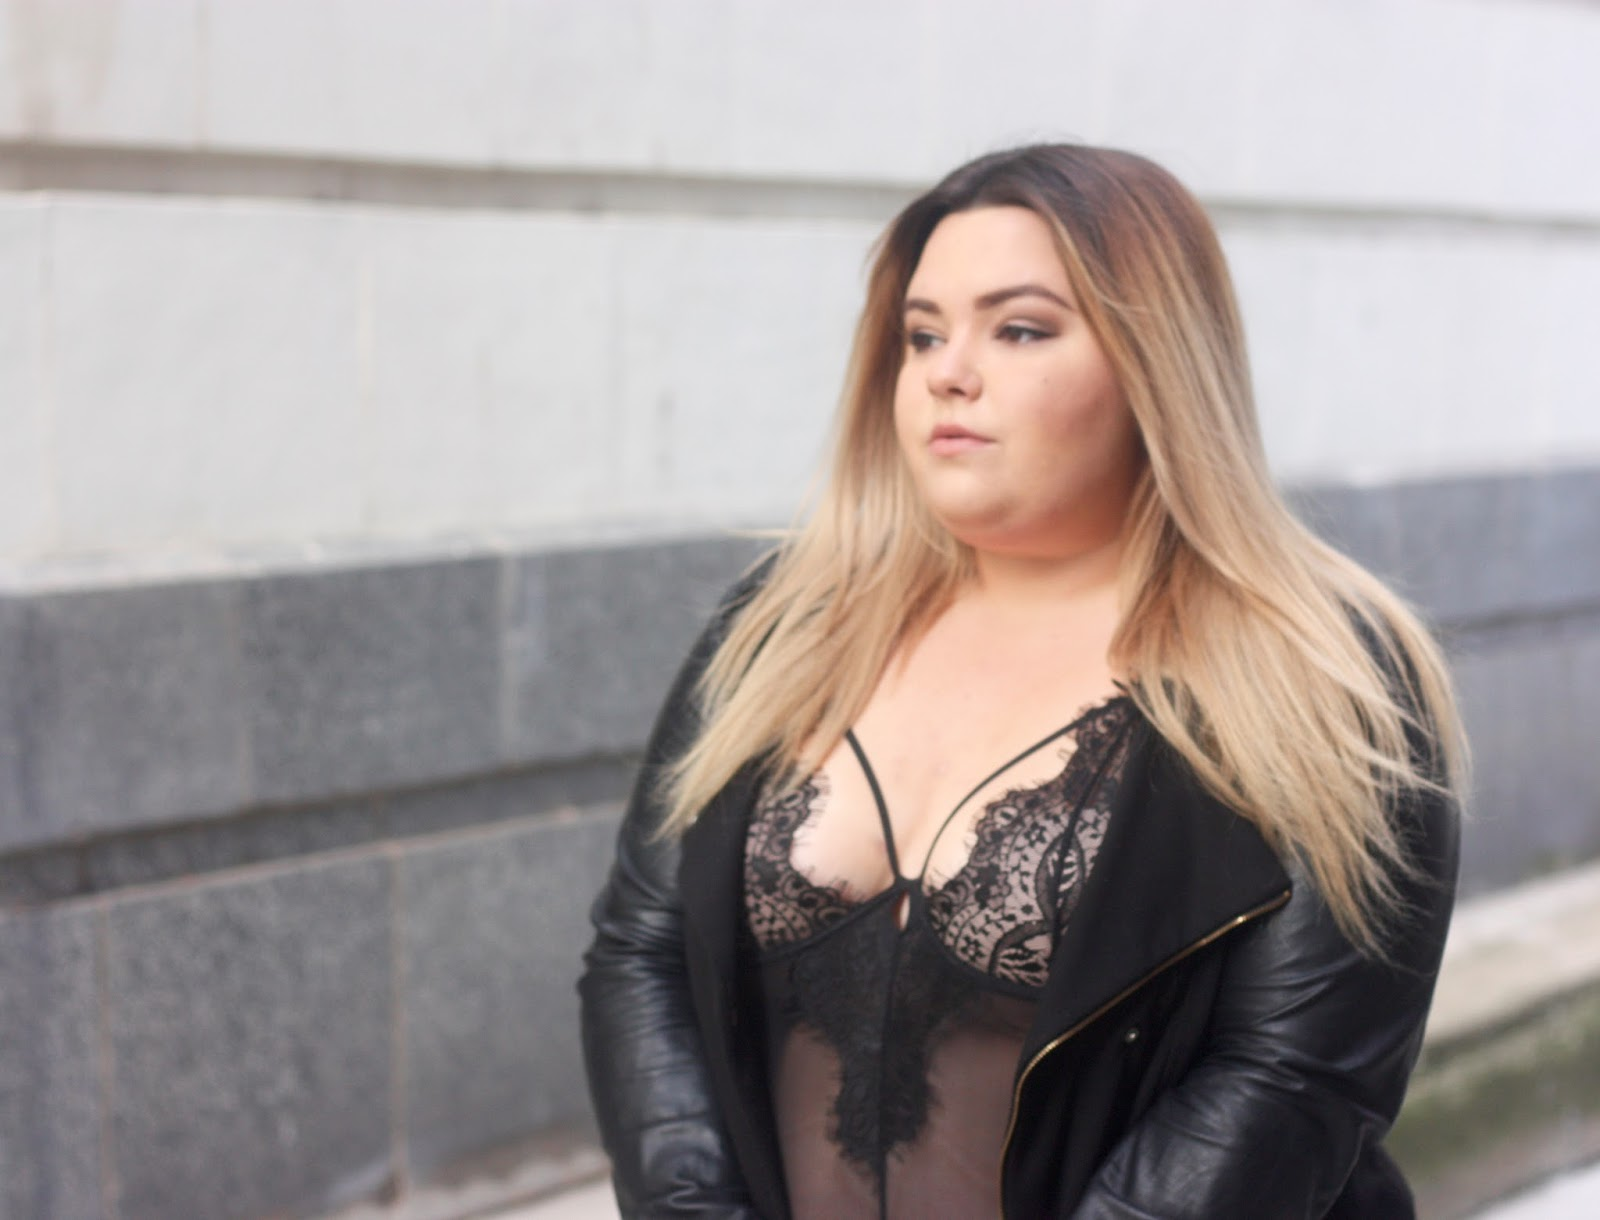 lingerie, street style, leather jacket, plus size fashion, natalie craig, natalie in the city, khloe kardashian, good american, fatshion, embrace your curves, curvy, what fat girls actually wear, chicago fashion blogger, lace bodysuit, midwest blogger, plus size lingerie